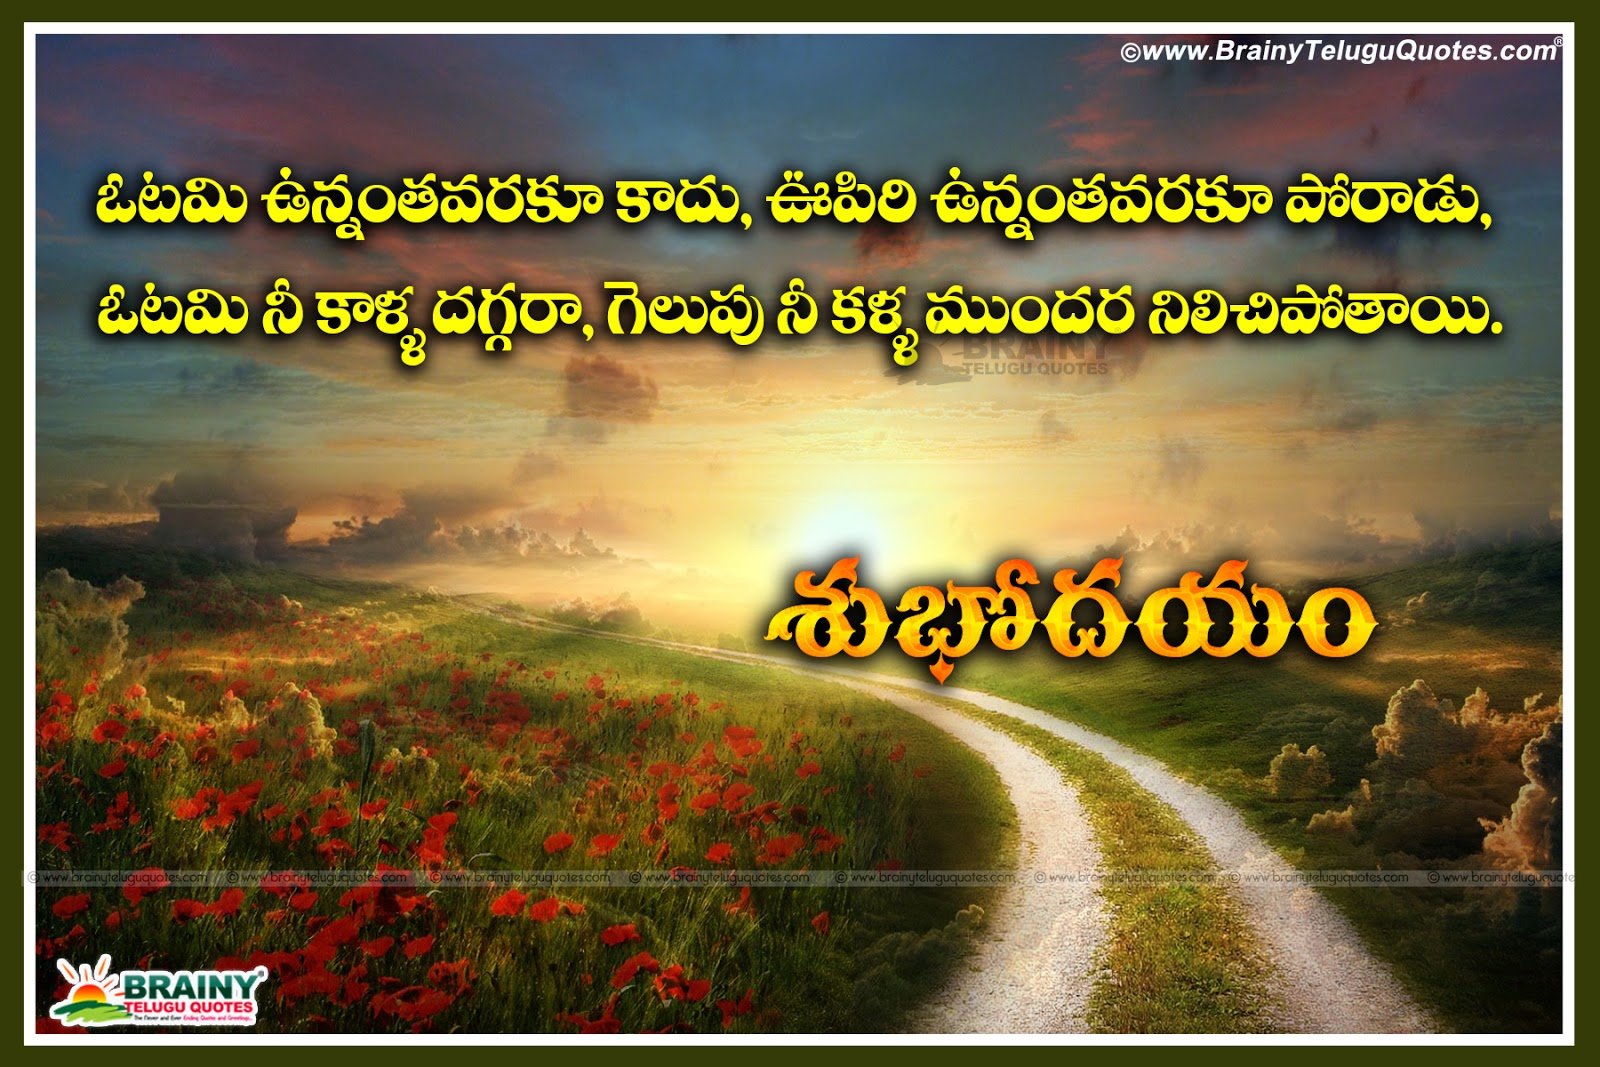 Good Morning Inspirational Quotes Good Morning Inspirational Quotes Hd Wallpapers In Telugu